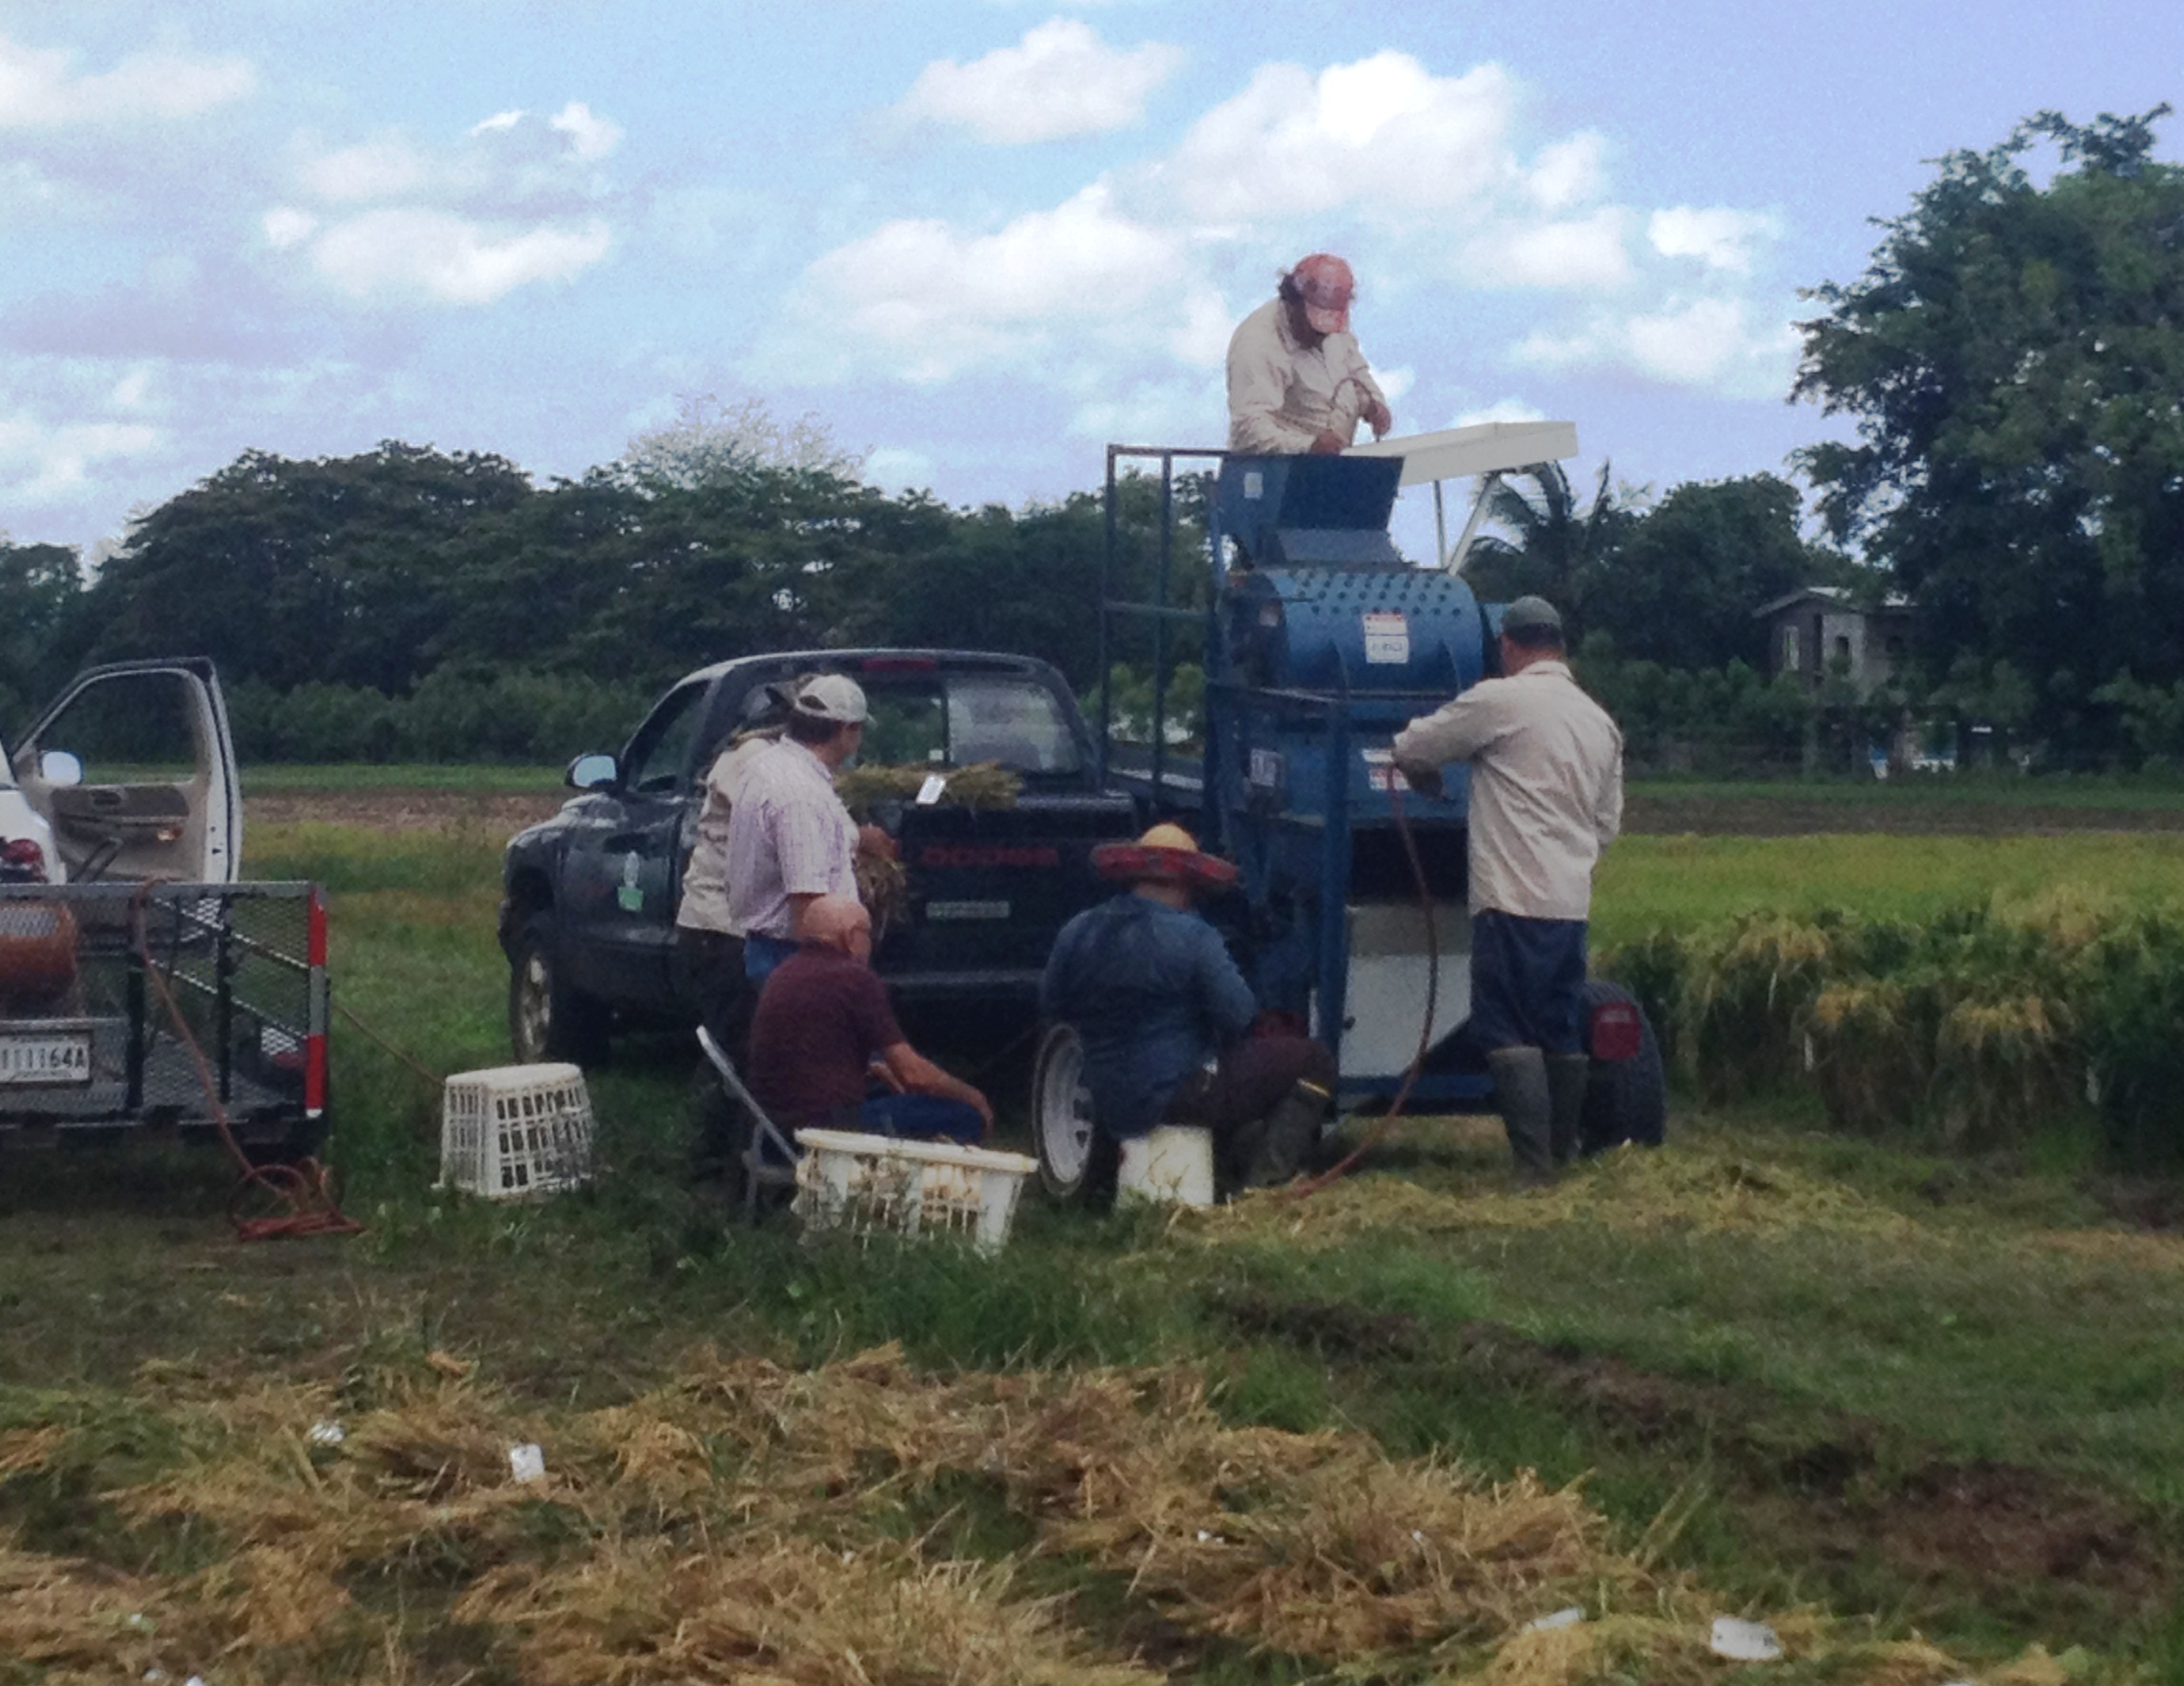 Puerto Rico Critical to Rice Research Efforts